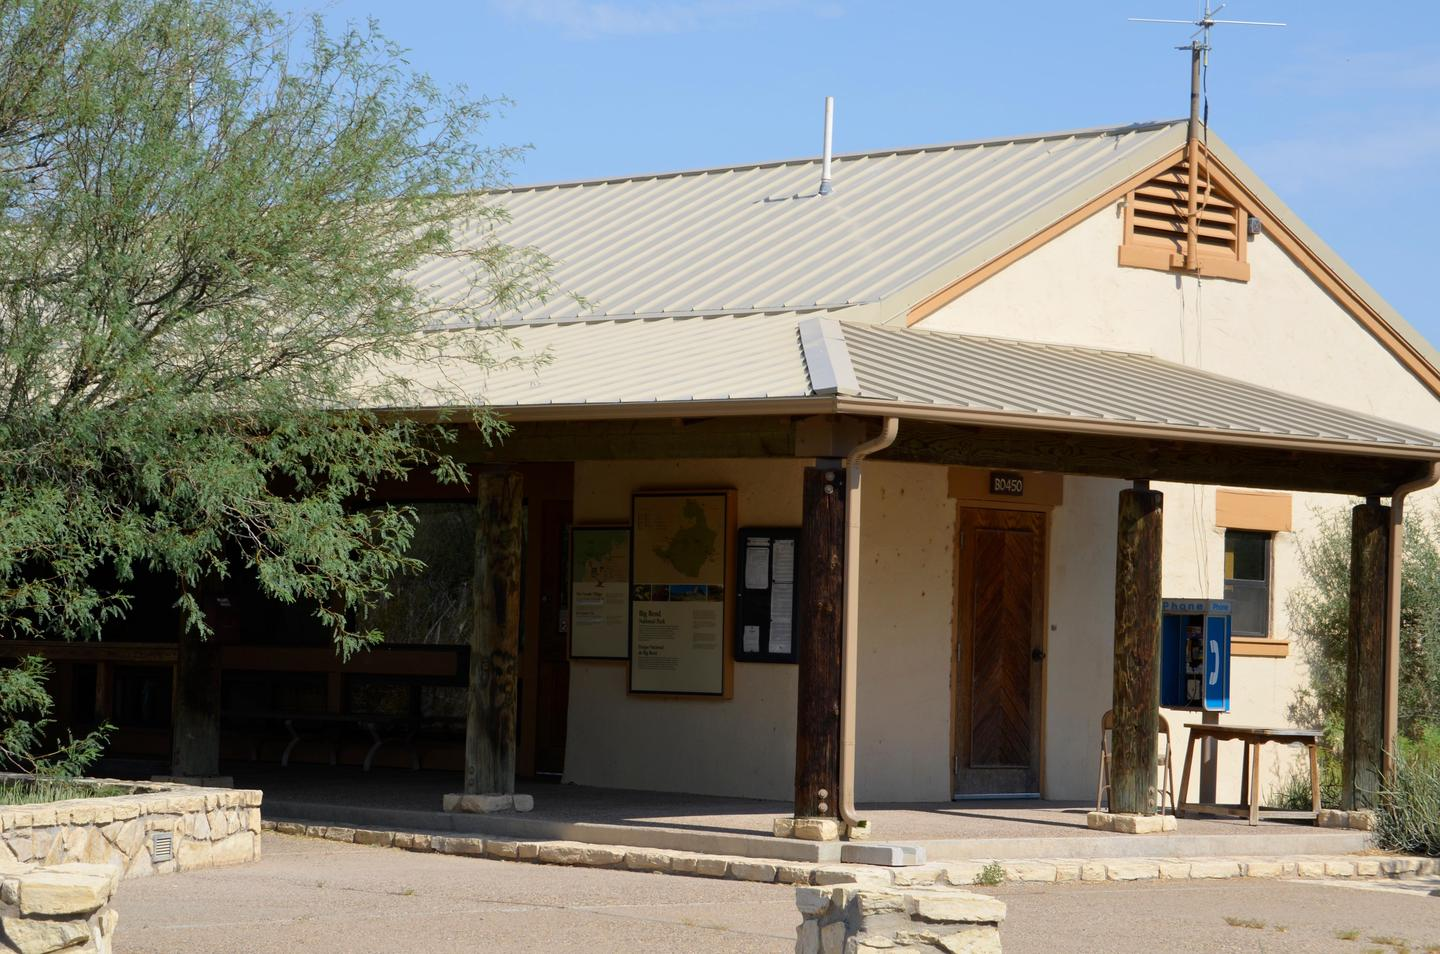 Rio Grande Village Visitor Center